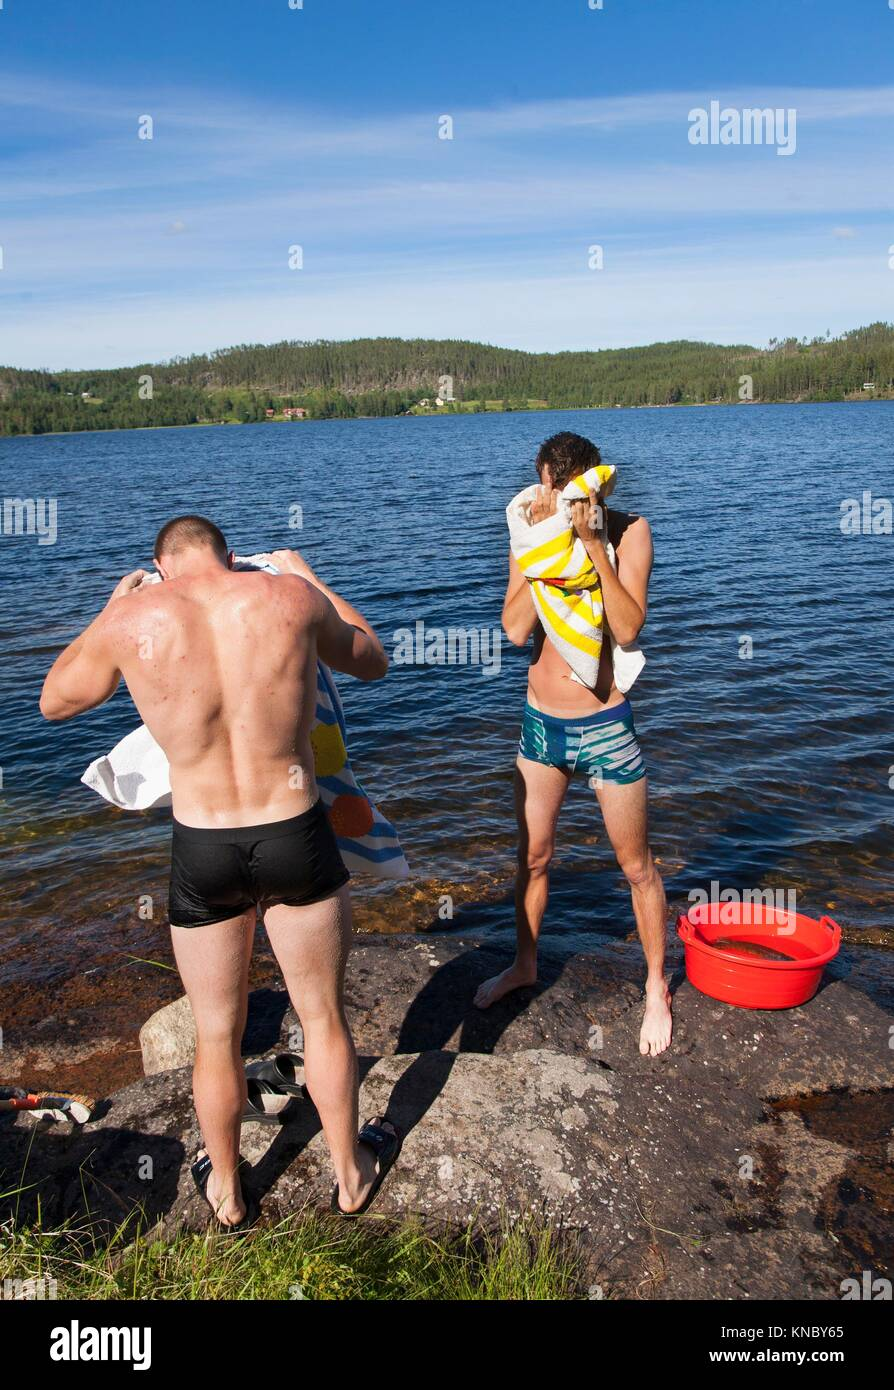 Washing by the water, Northern Sweden. - Stock Image